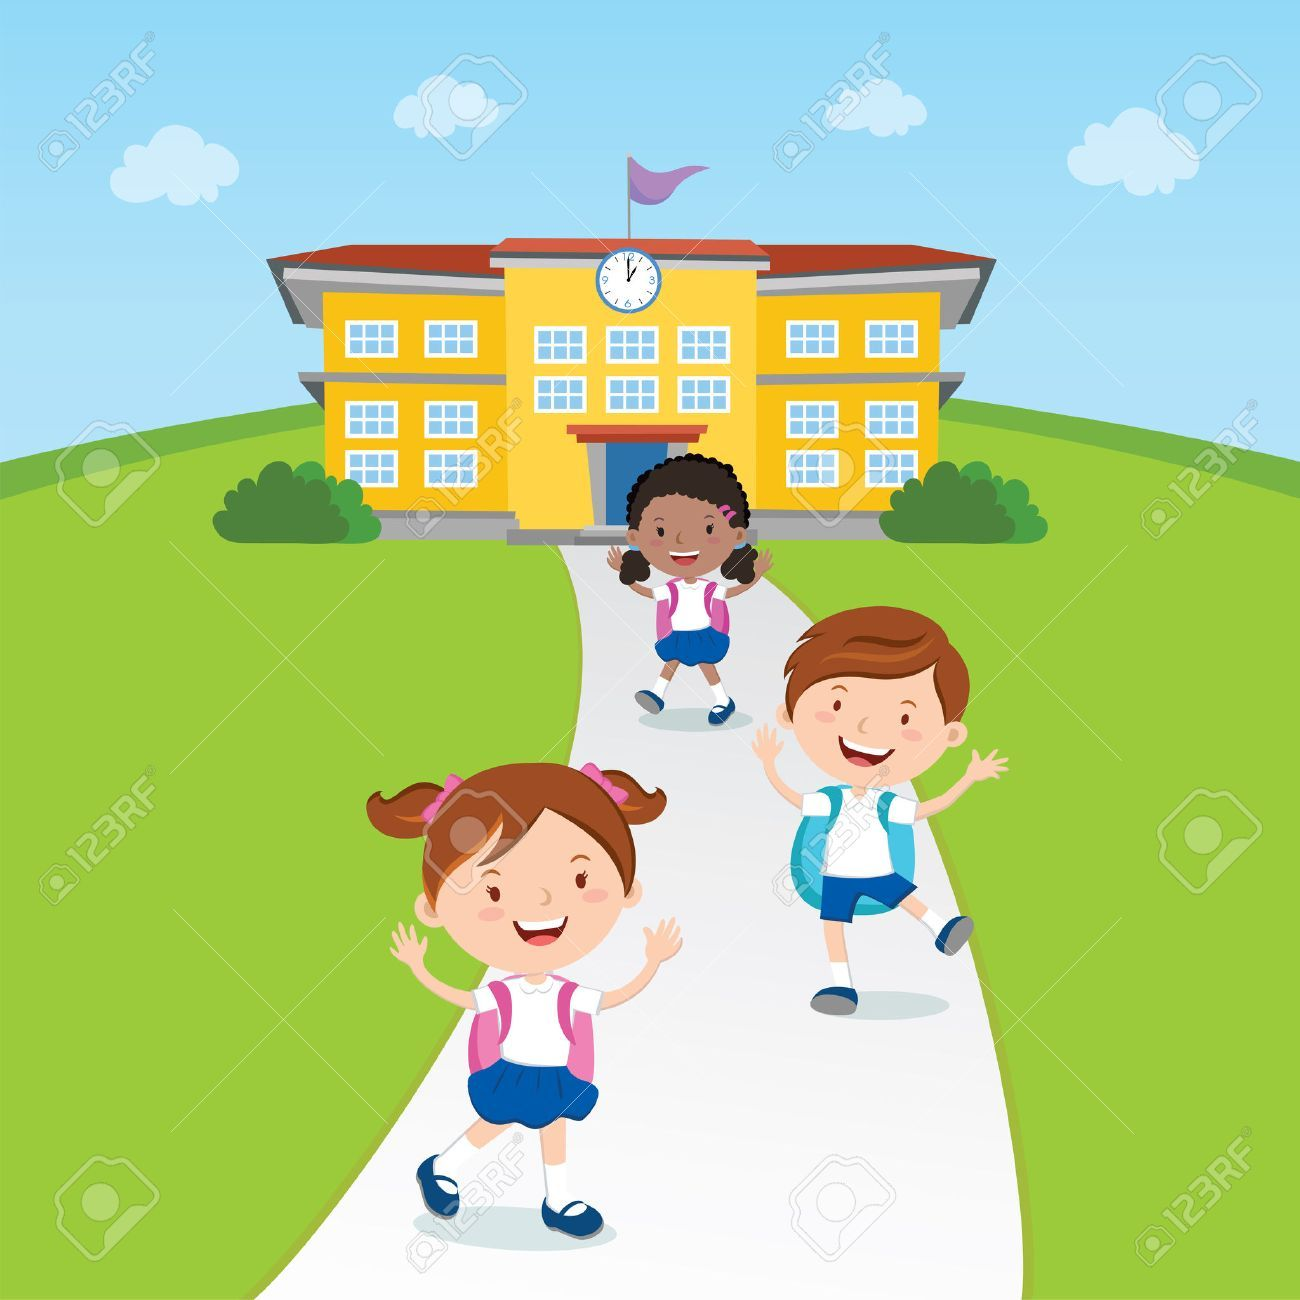 Boy going home clipart 3 » Clipart Portal.